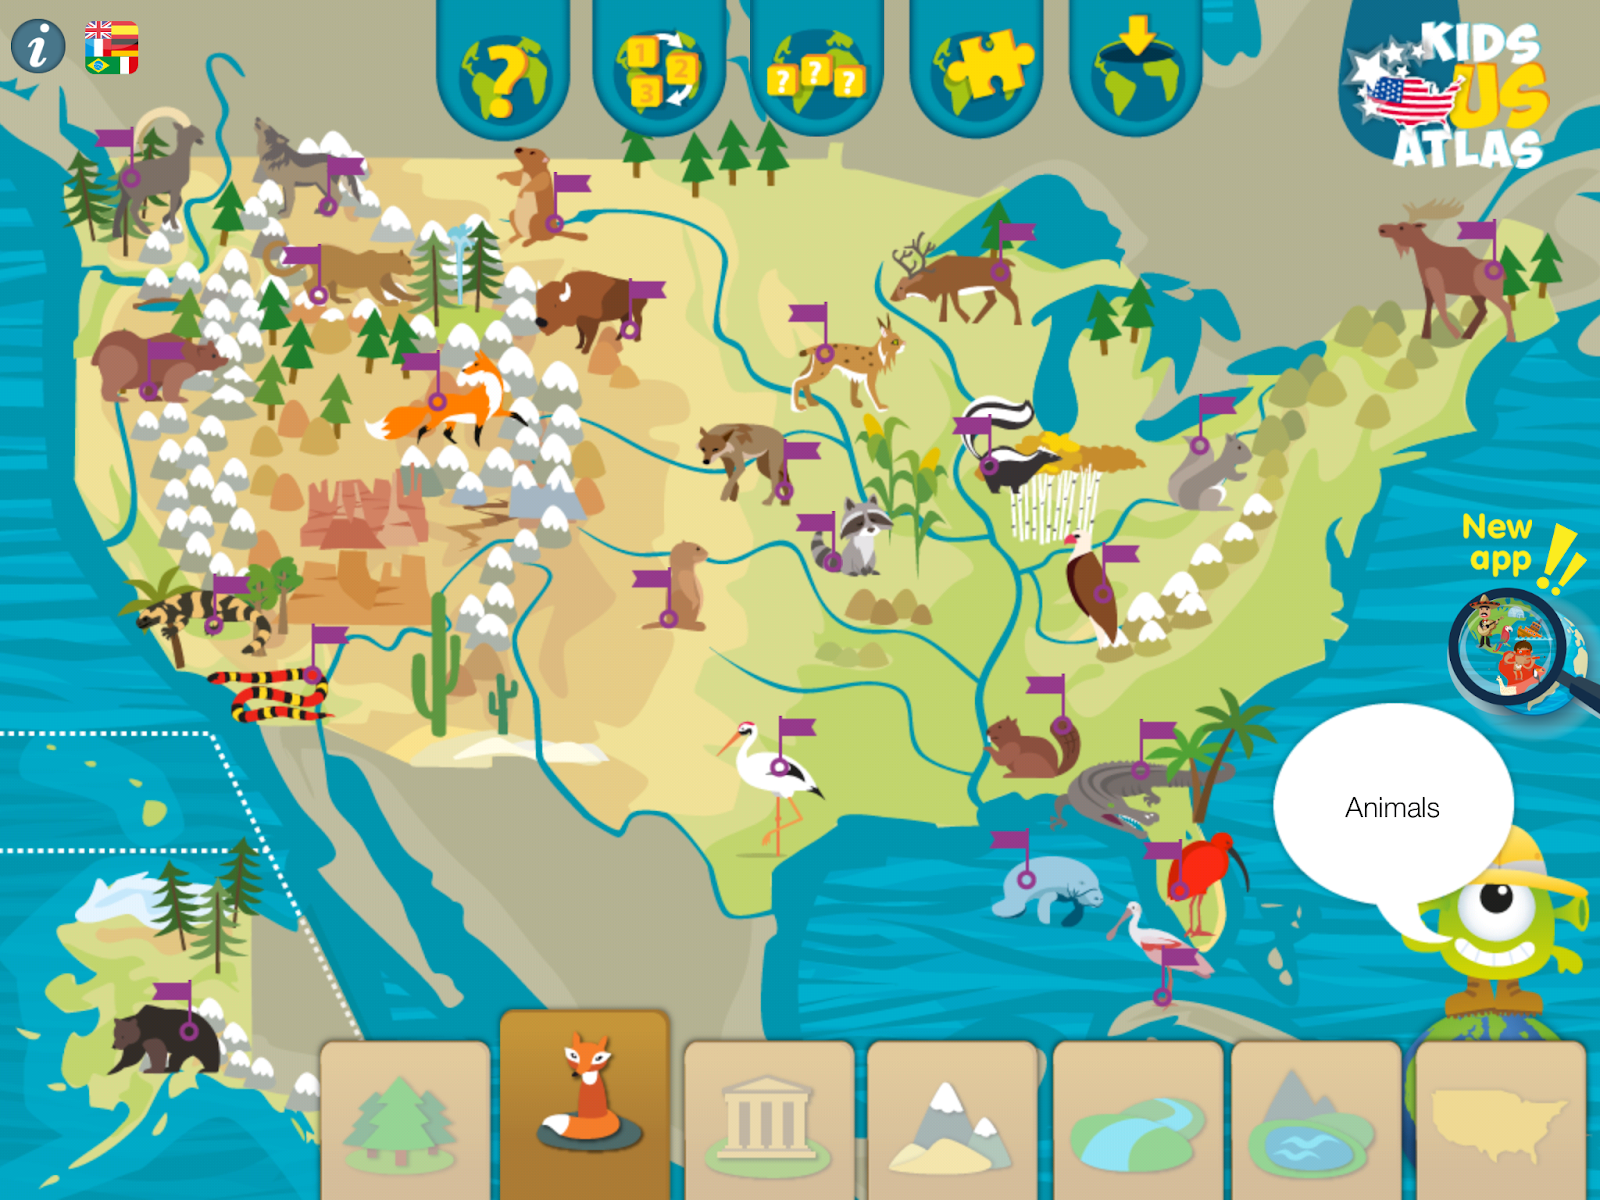 Atlas Smart Technology Circuit Bent Mechanical Furby Sequencer The Gurdy Map That Features Animals Of United States Is Completely Free To Use As You Can See In Screenshot Below There Are Some Interactive Maps